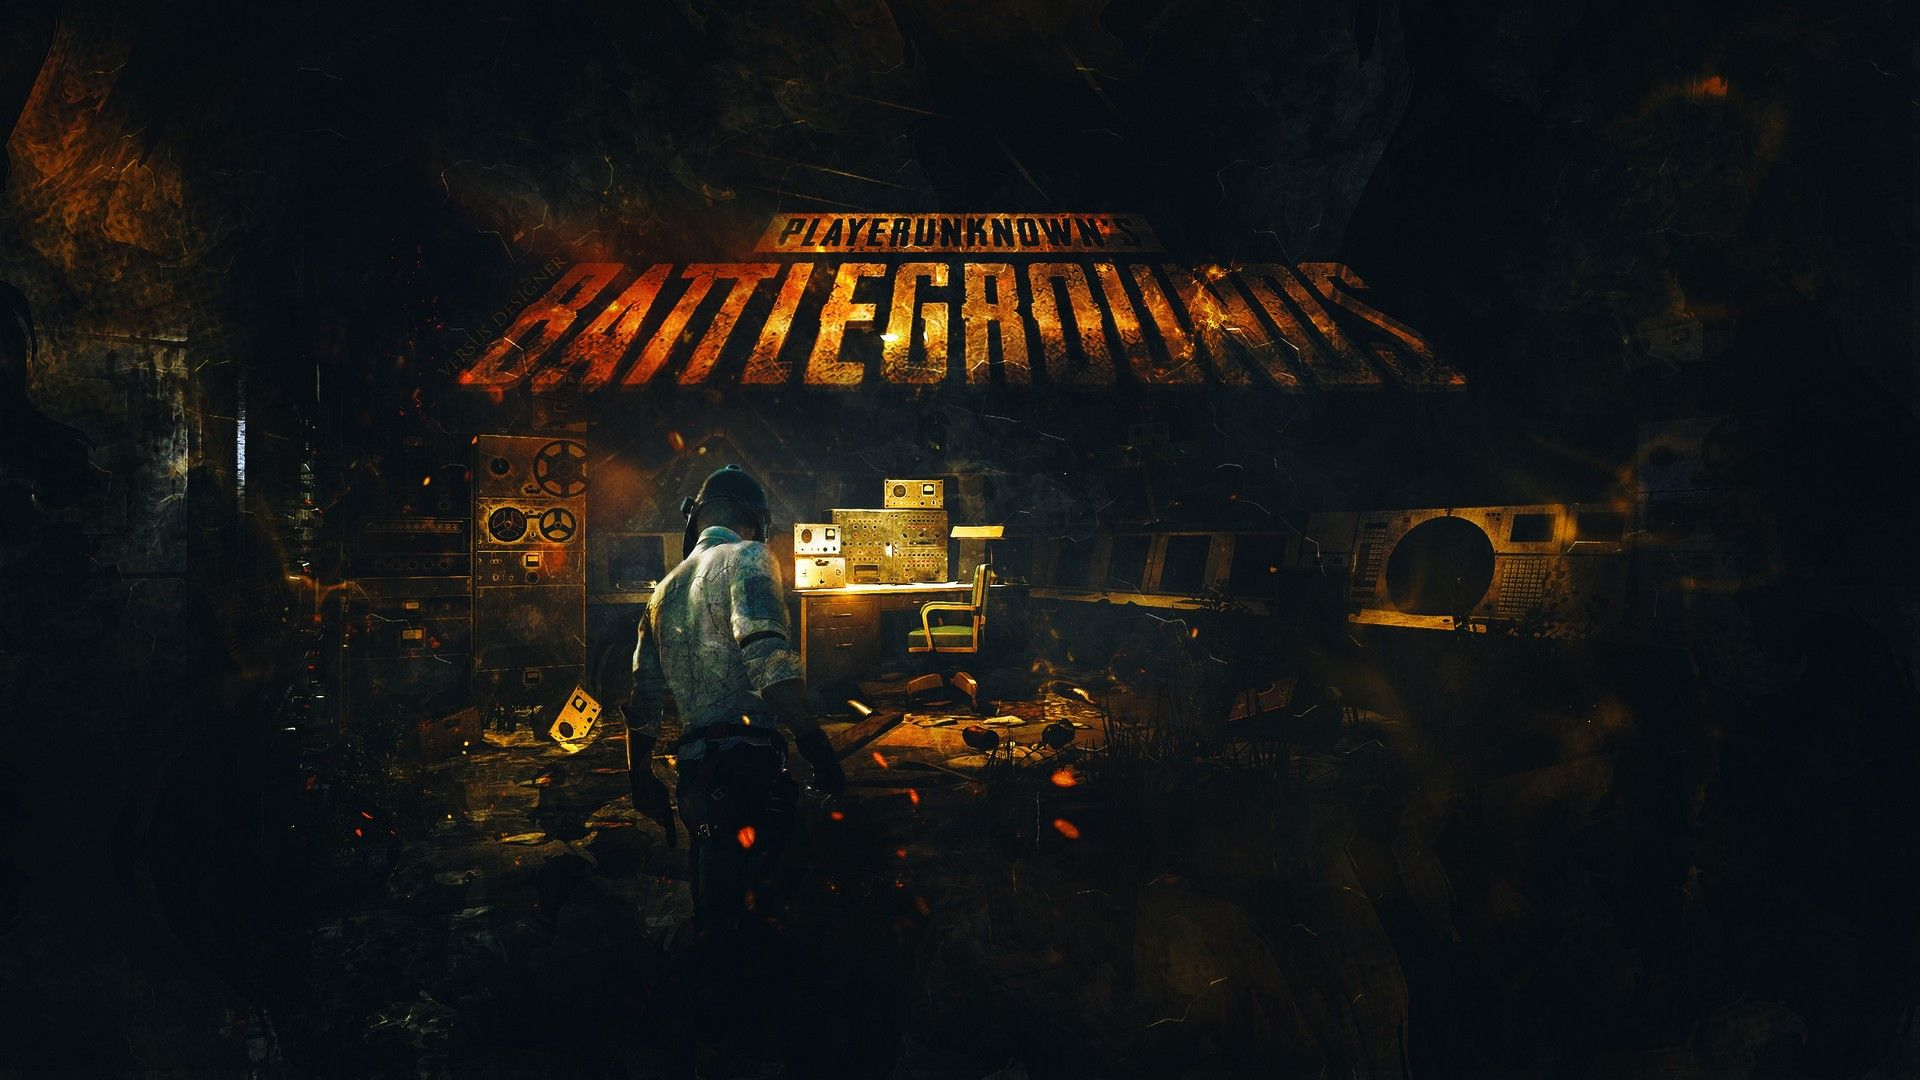 Pubg Wallpaper Windows 7: Hd Wallpaper For Pc Pubg